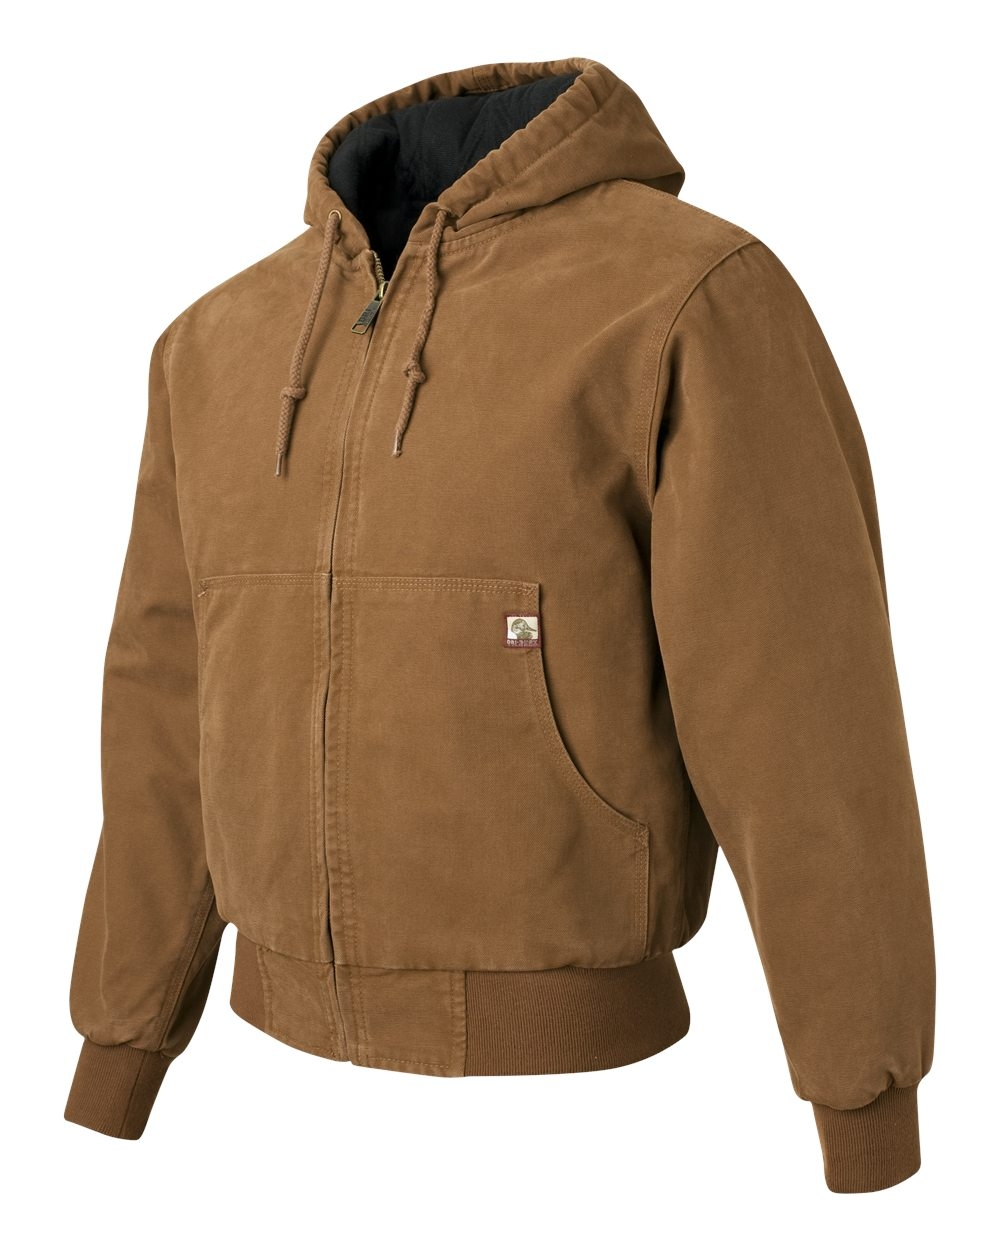 Dri Duck - 5020, Dri Duck Mens Hooded Boulder Cloth Jacket with Tricot Quilt Lining  - Logo Masters International